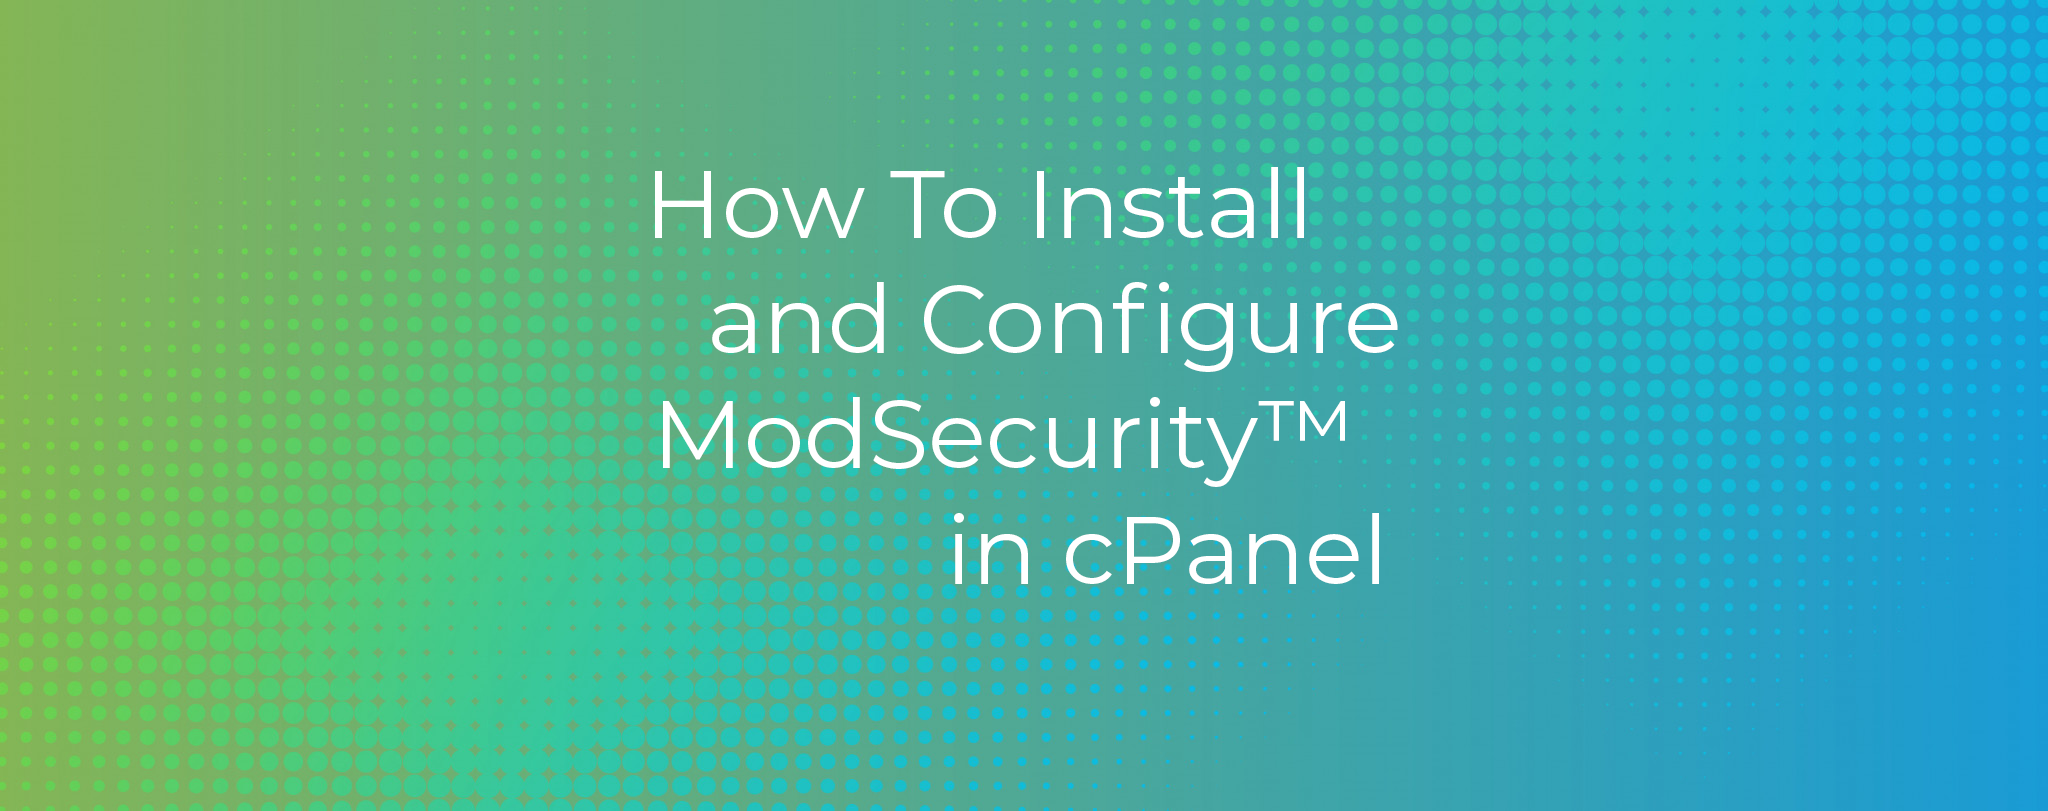 How To Install and Configure ModSecurity in cPanel